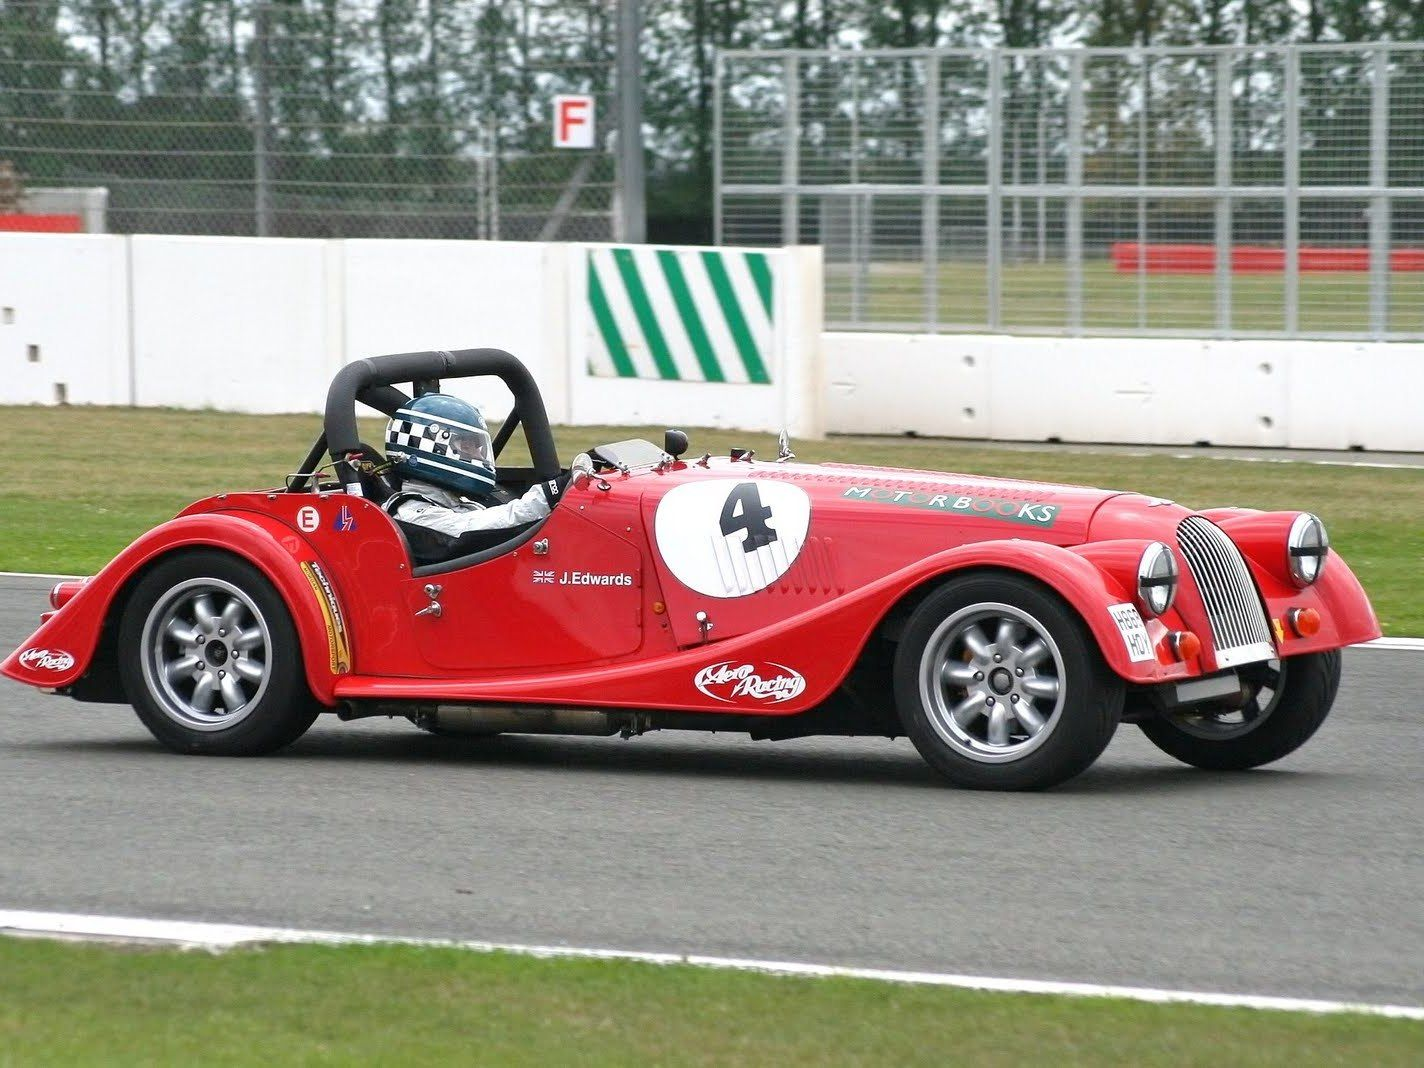 1991 Class B Competition Morgan +8 – Reduced Price: £32,000